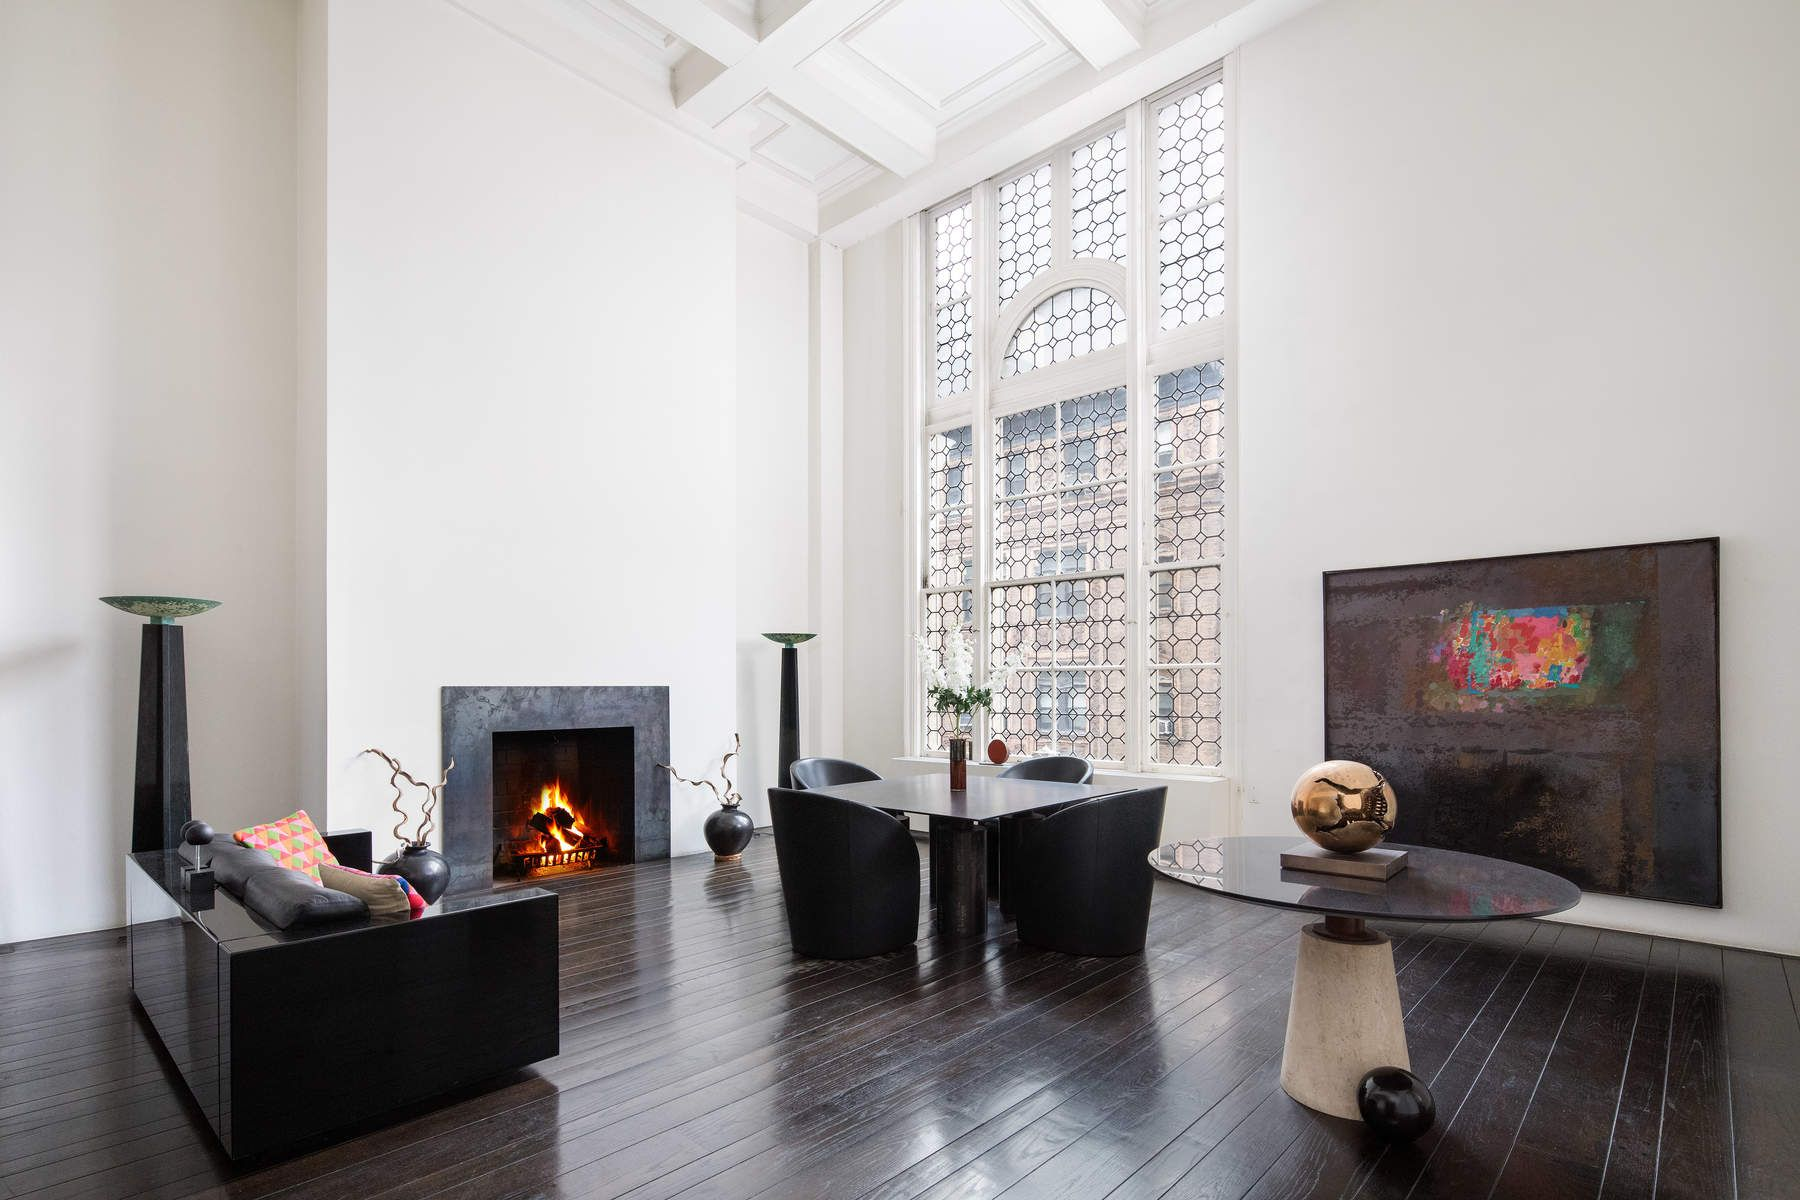 Co-op for Sale at 130 East 67th Street Apt 6E 130 East 67th Street Apt 6E New York, New York 10065 United States